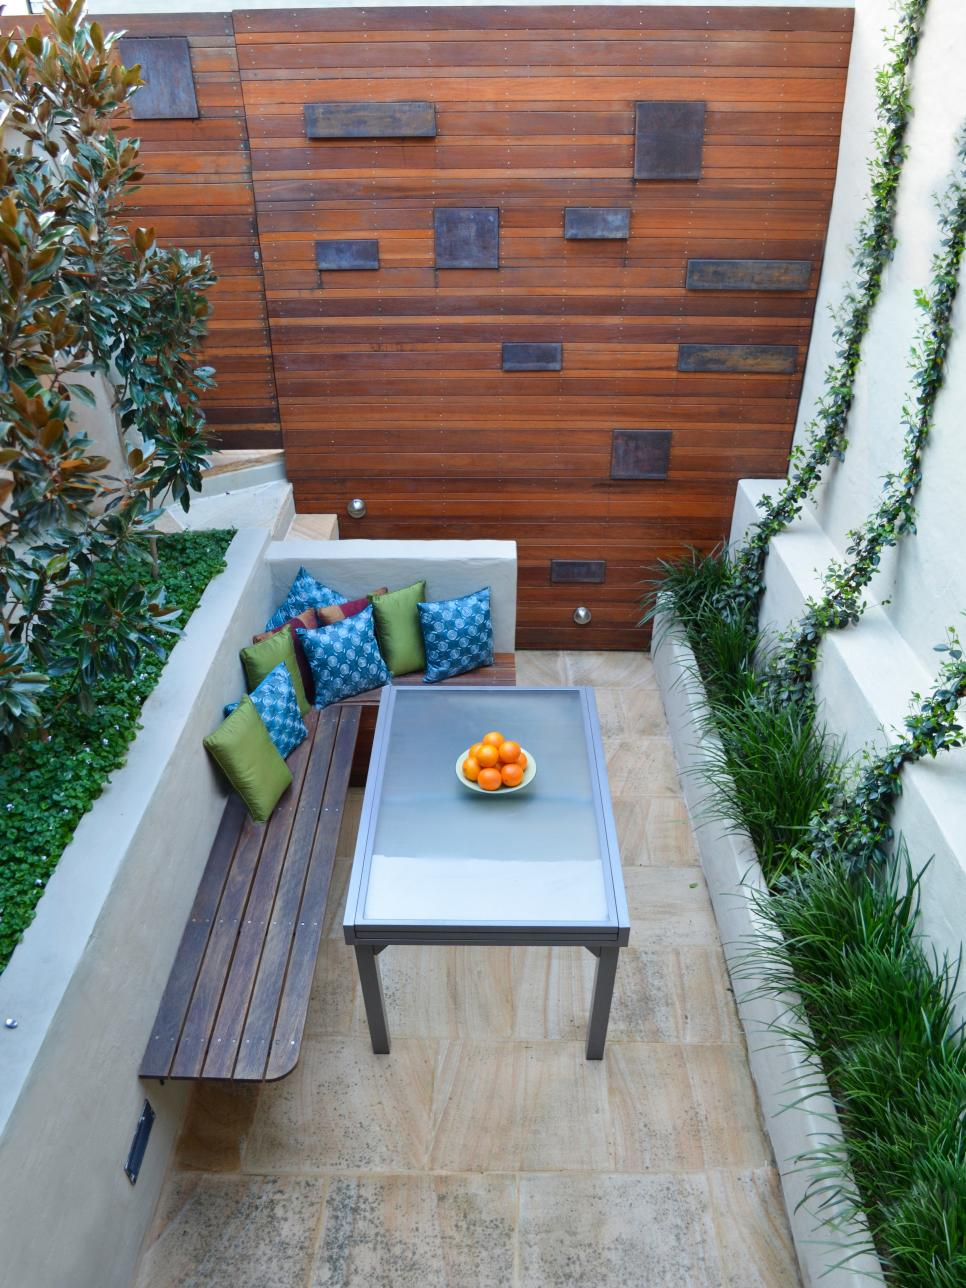 Luxury small patio ideas pictures and tips for small patios | hgtv mbrpurg